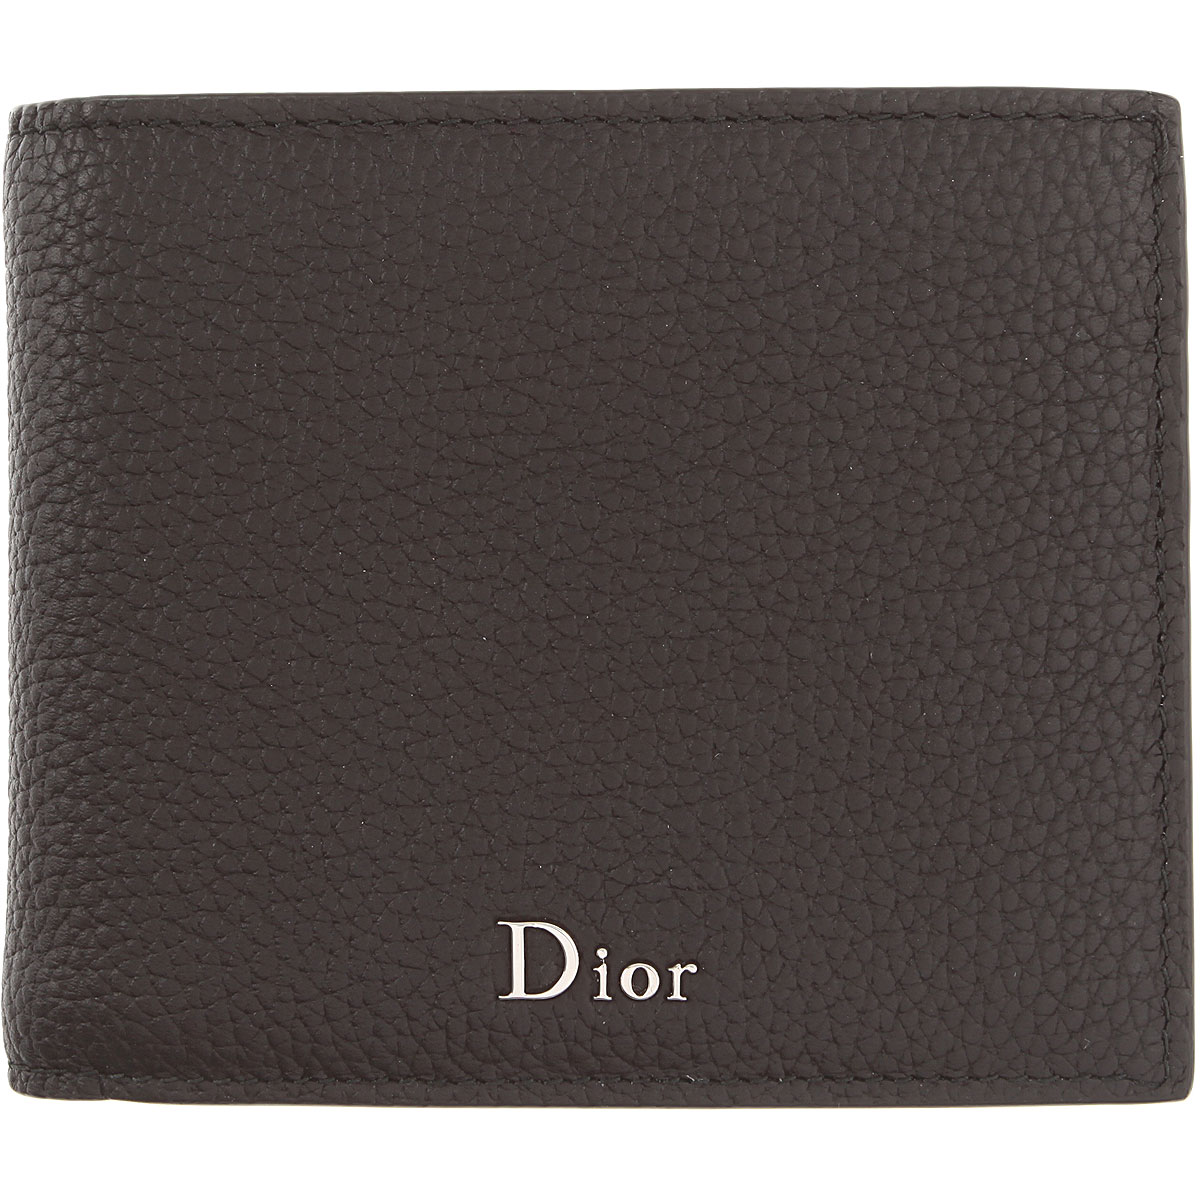 Image of Christian Dior Card Holder for Men, Black, Leather, 2017